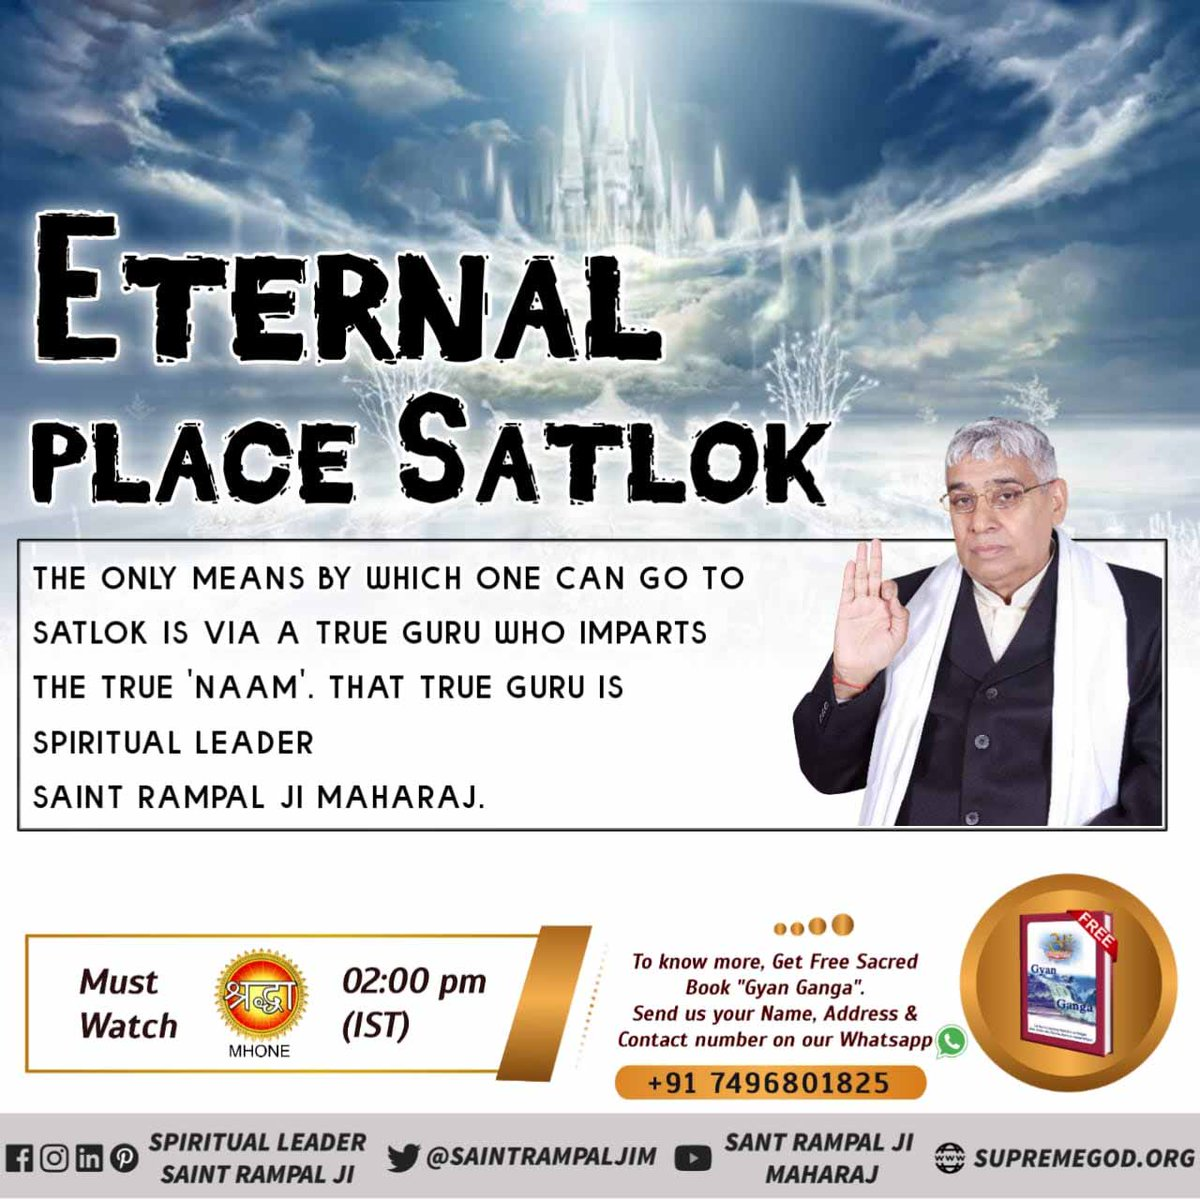 @spiritualtime #wednesdaythought EARTH This World is perishable and so are all the living beings here. Vs SATLOK Satlok In Eternal and so  are the living beings residing there. @SaintRampalJiM Visit Satlok Ashram YouTube Channel Eternal place Satlok